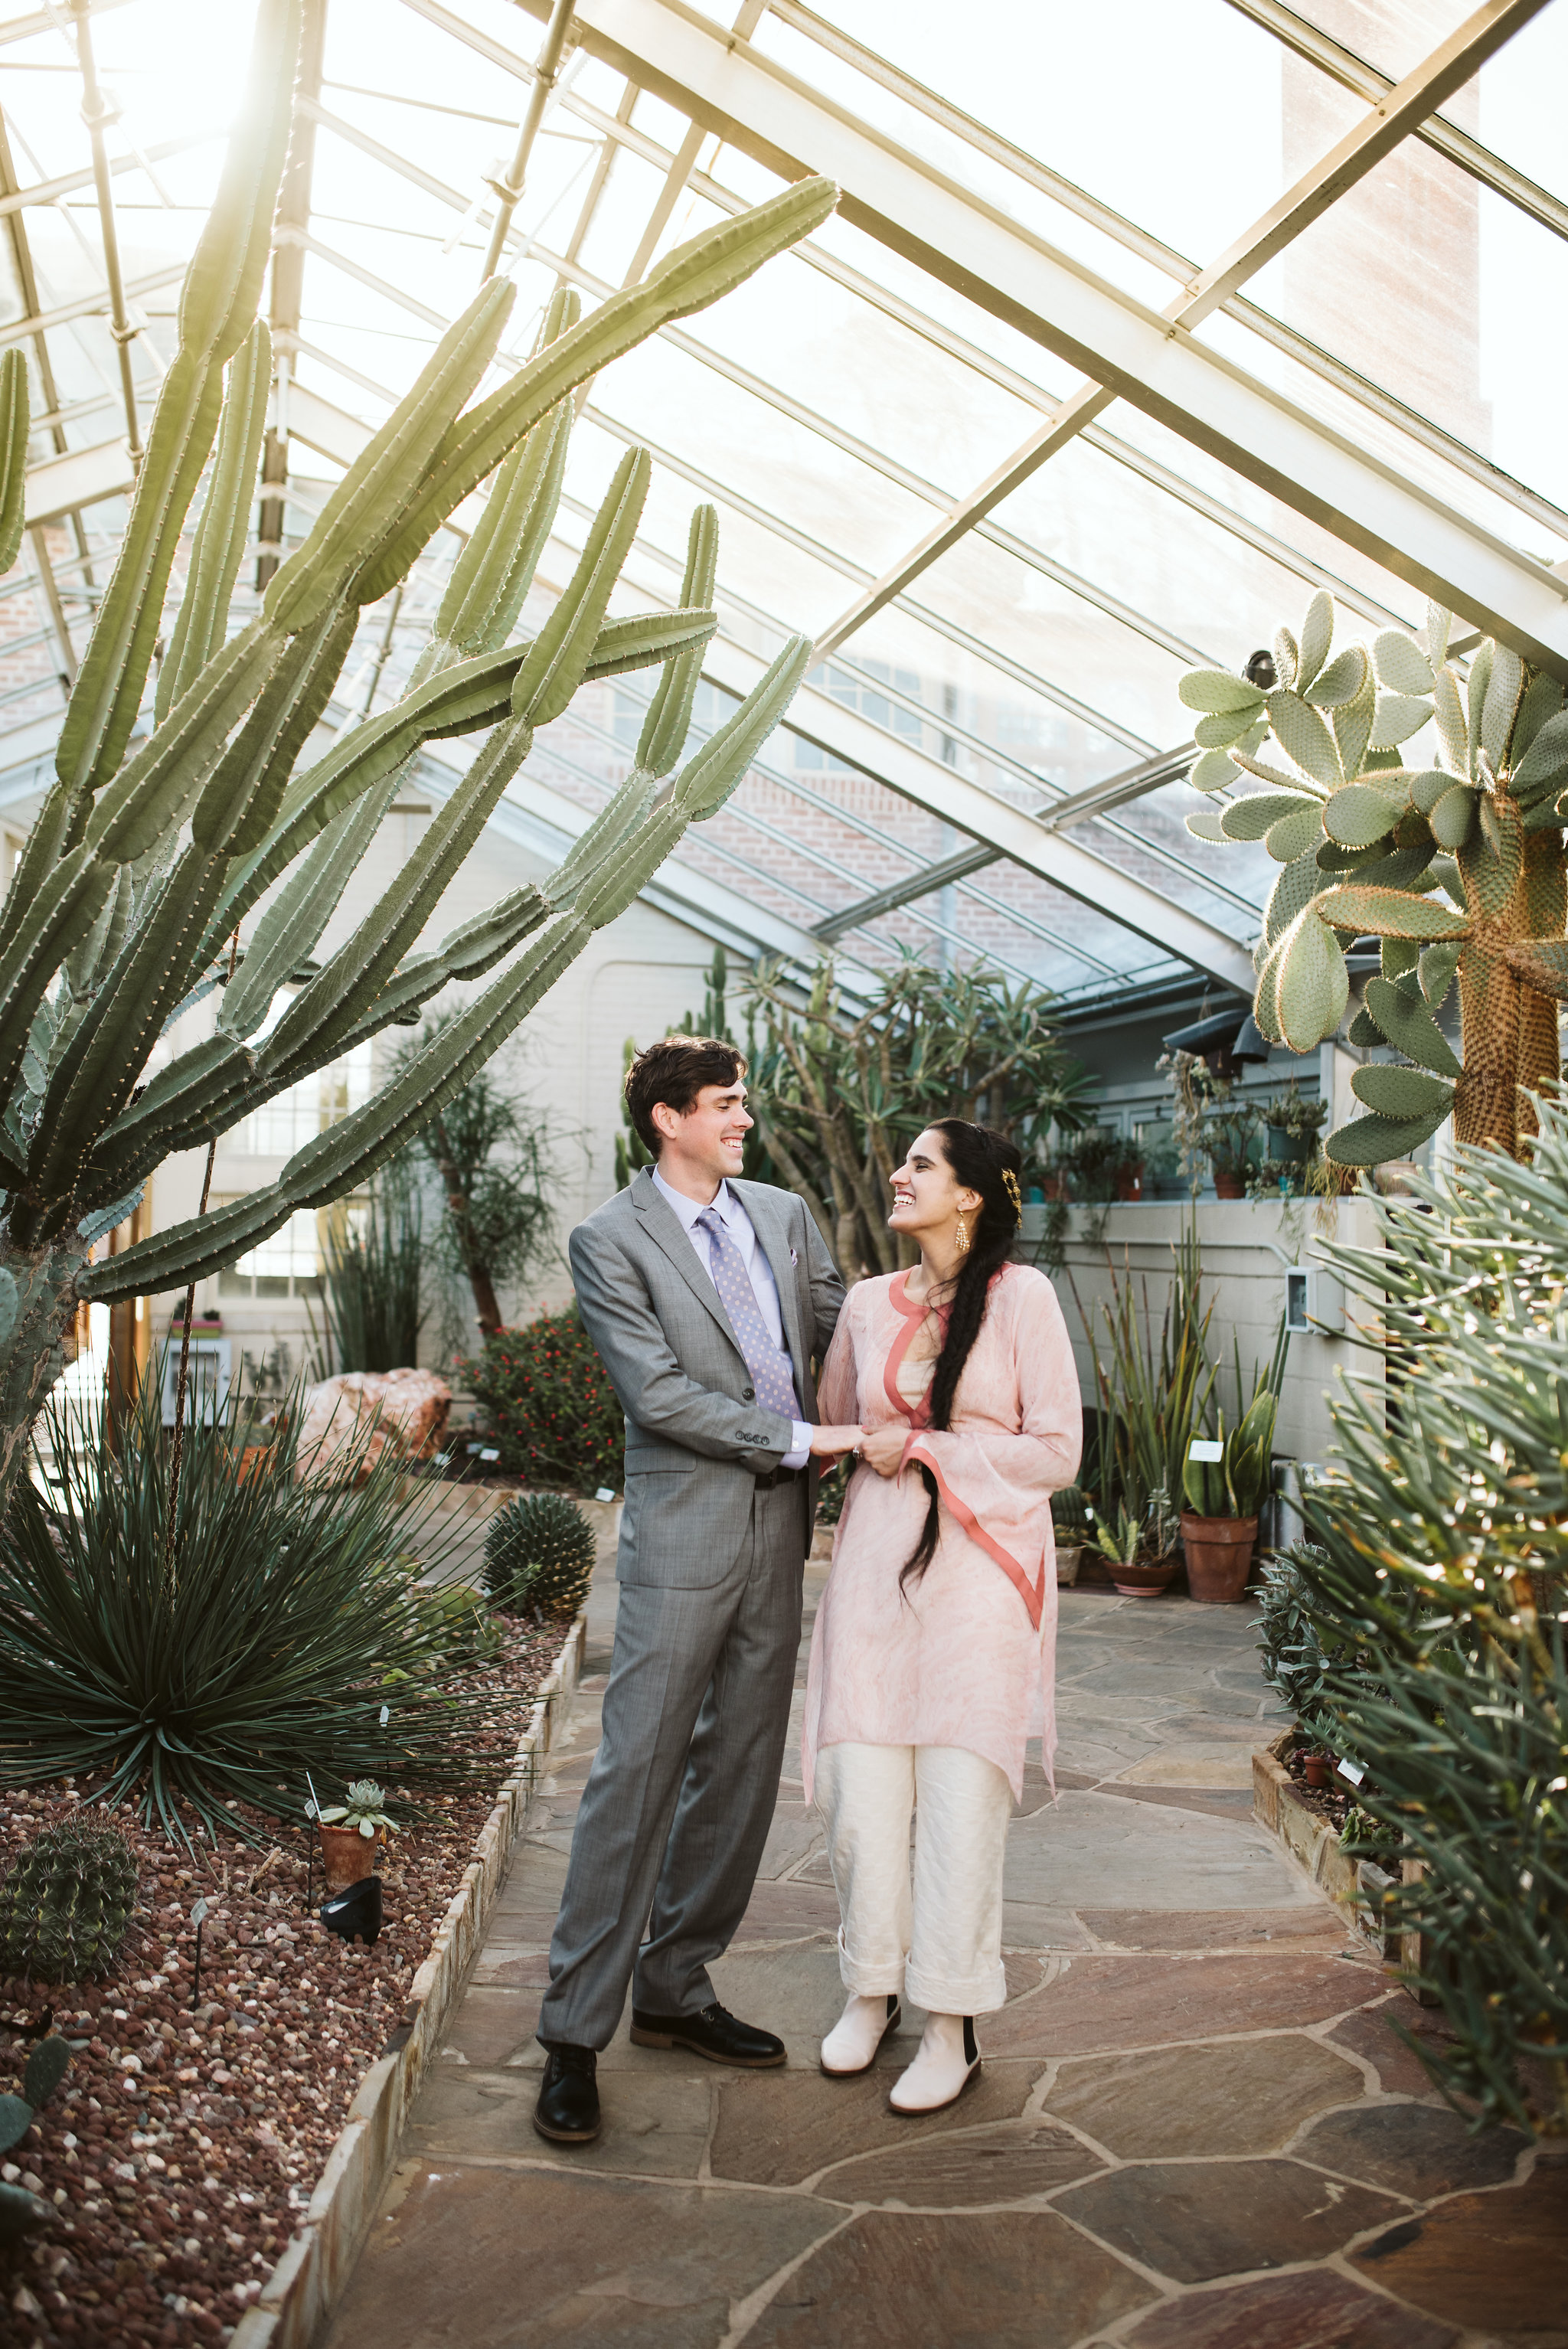 Elopement, Weekday Wedding, Baltimore, Rawlings Conservatory, Greenhouse, Maryland Wedding Photographer, Indian American, Nature, Romantic, Garden, Bride and Groom Laughing, Cactus